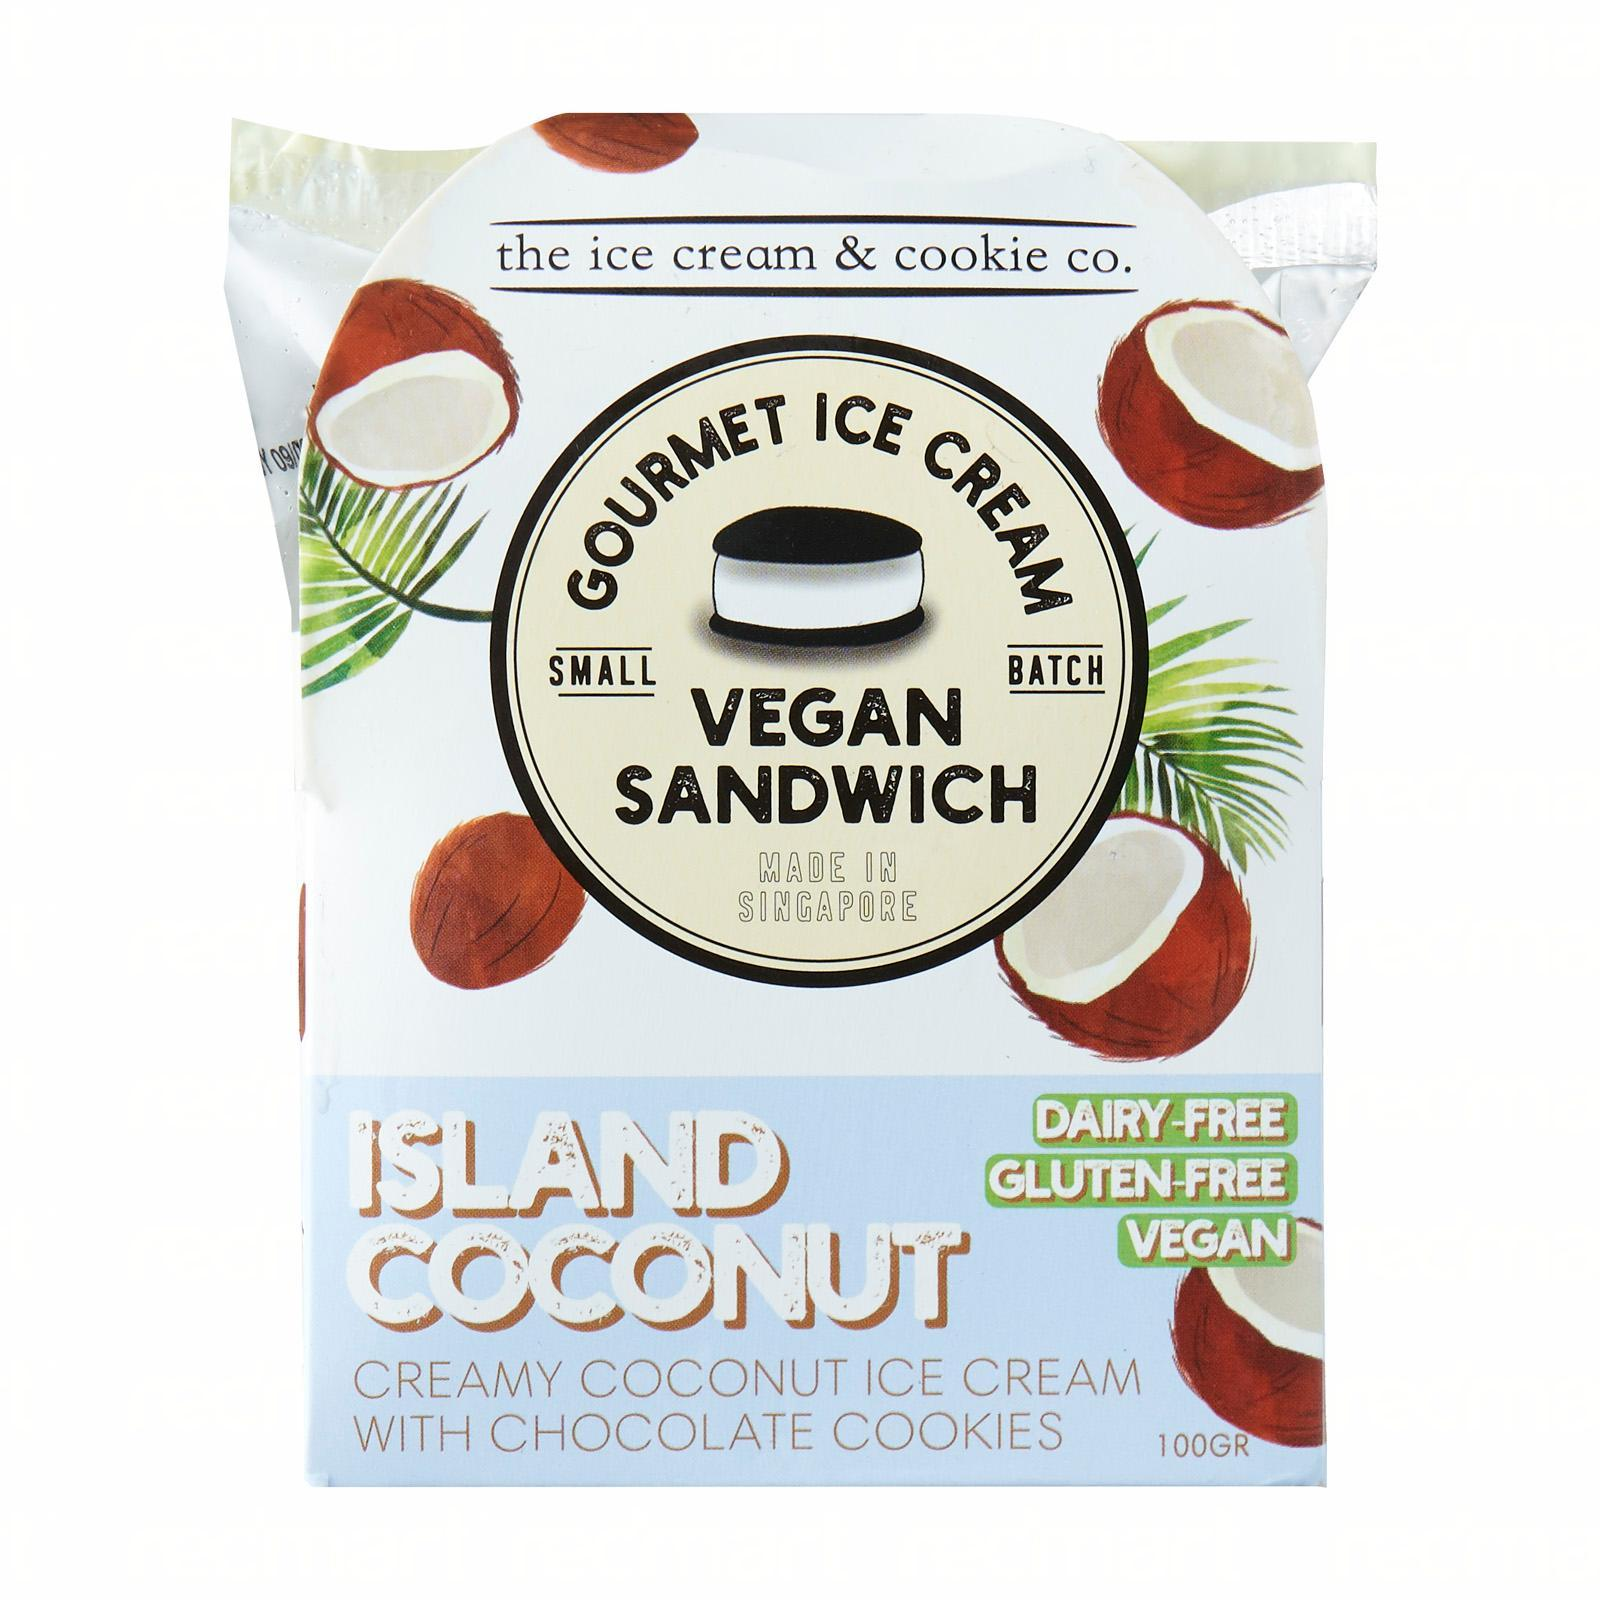 The Ice Cream & Cookie Co. Vegan Coconut Ice Cream Sandwich (Vegan Dairy-Free and Gluten-Free)